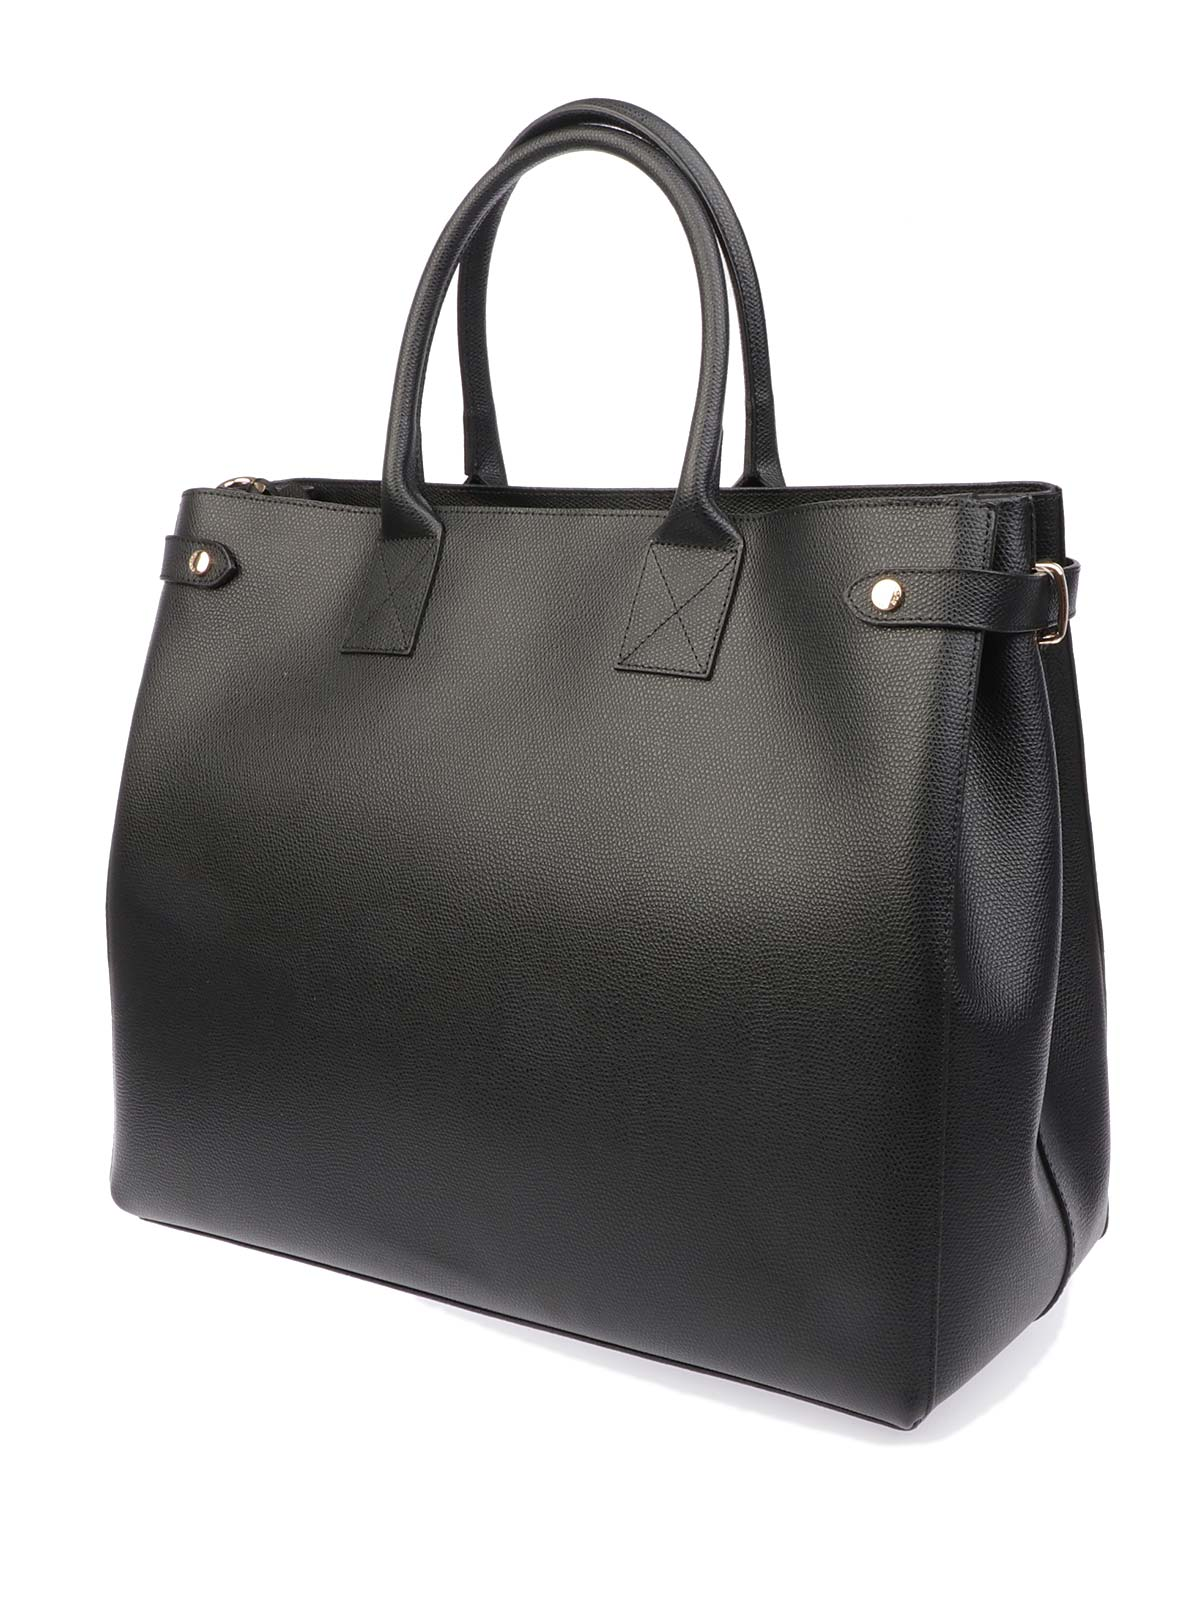 Picture of GIANNI NOTARO | Women's Leather Bag with Handles